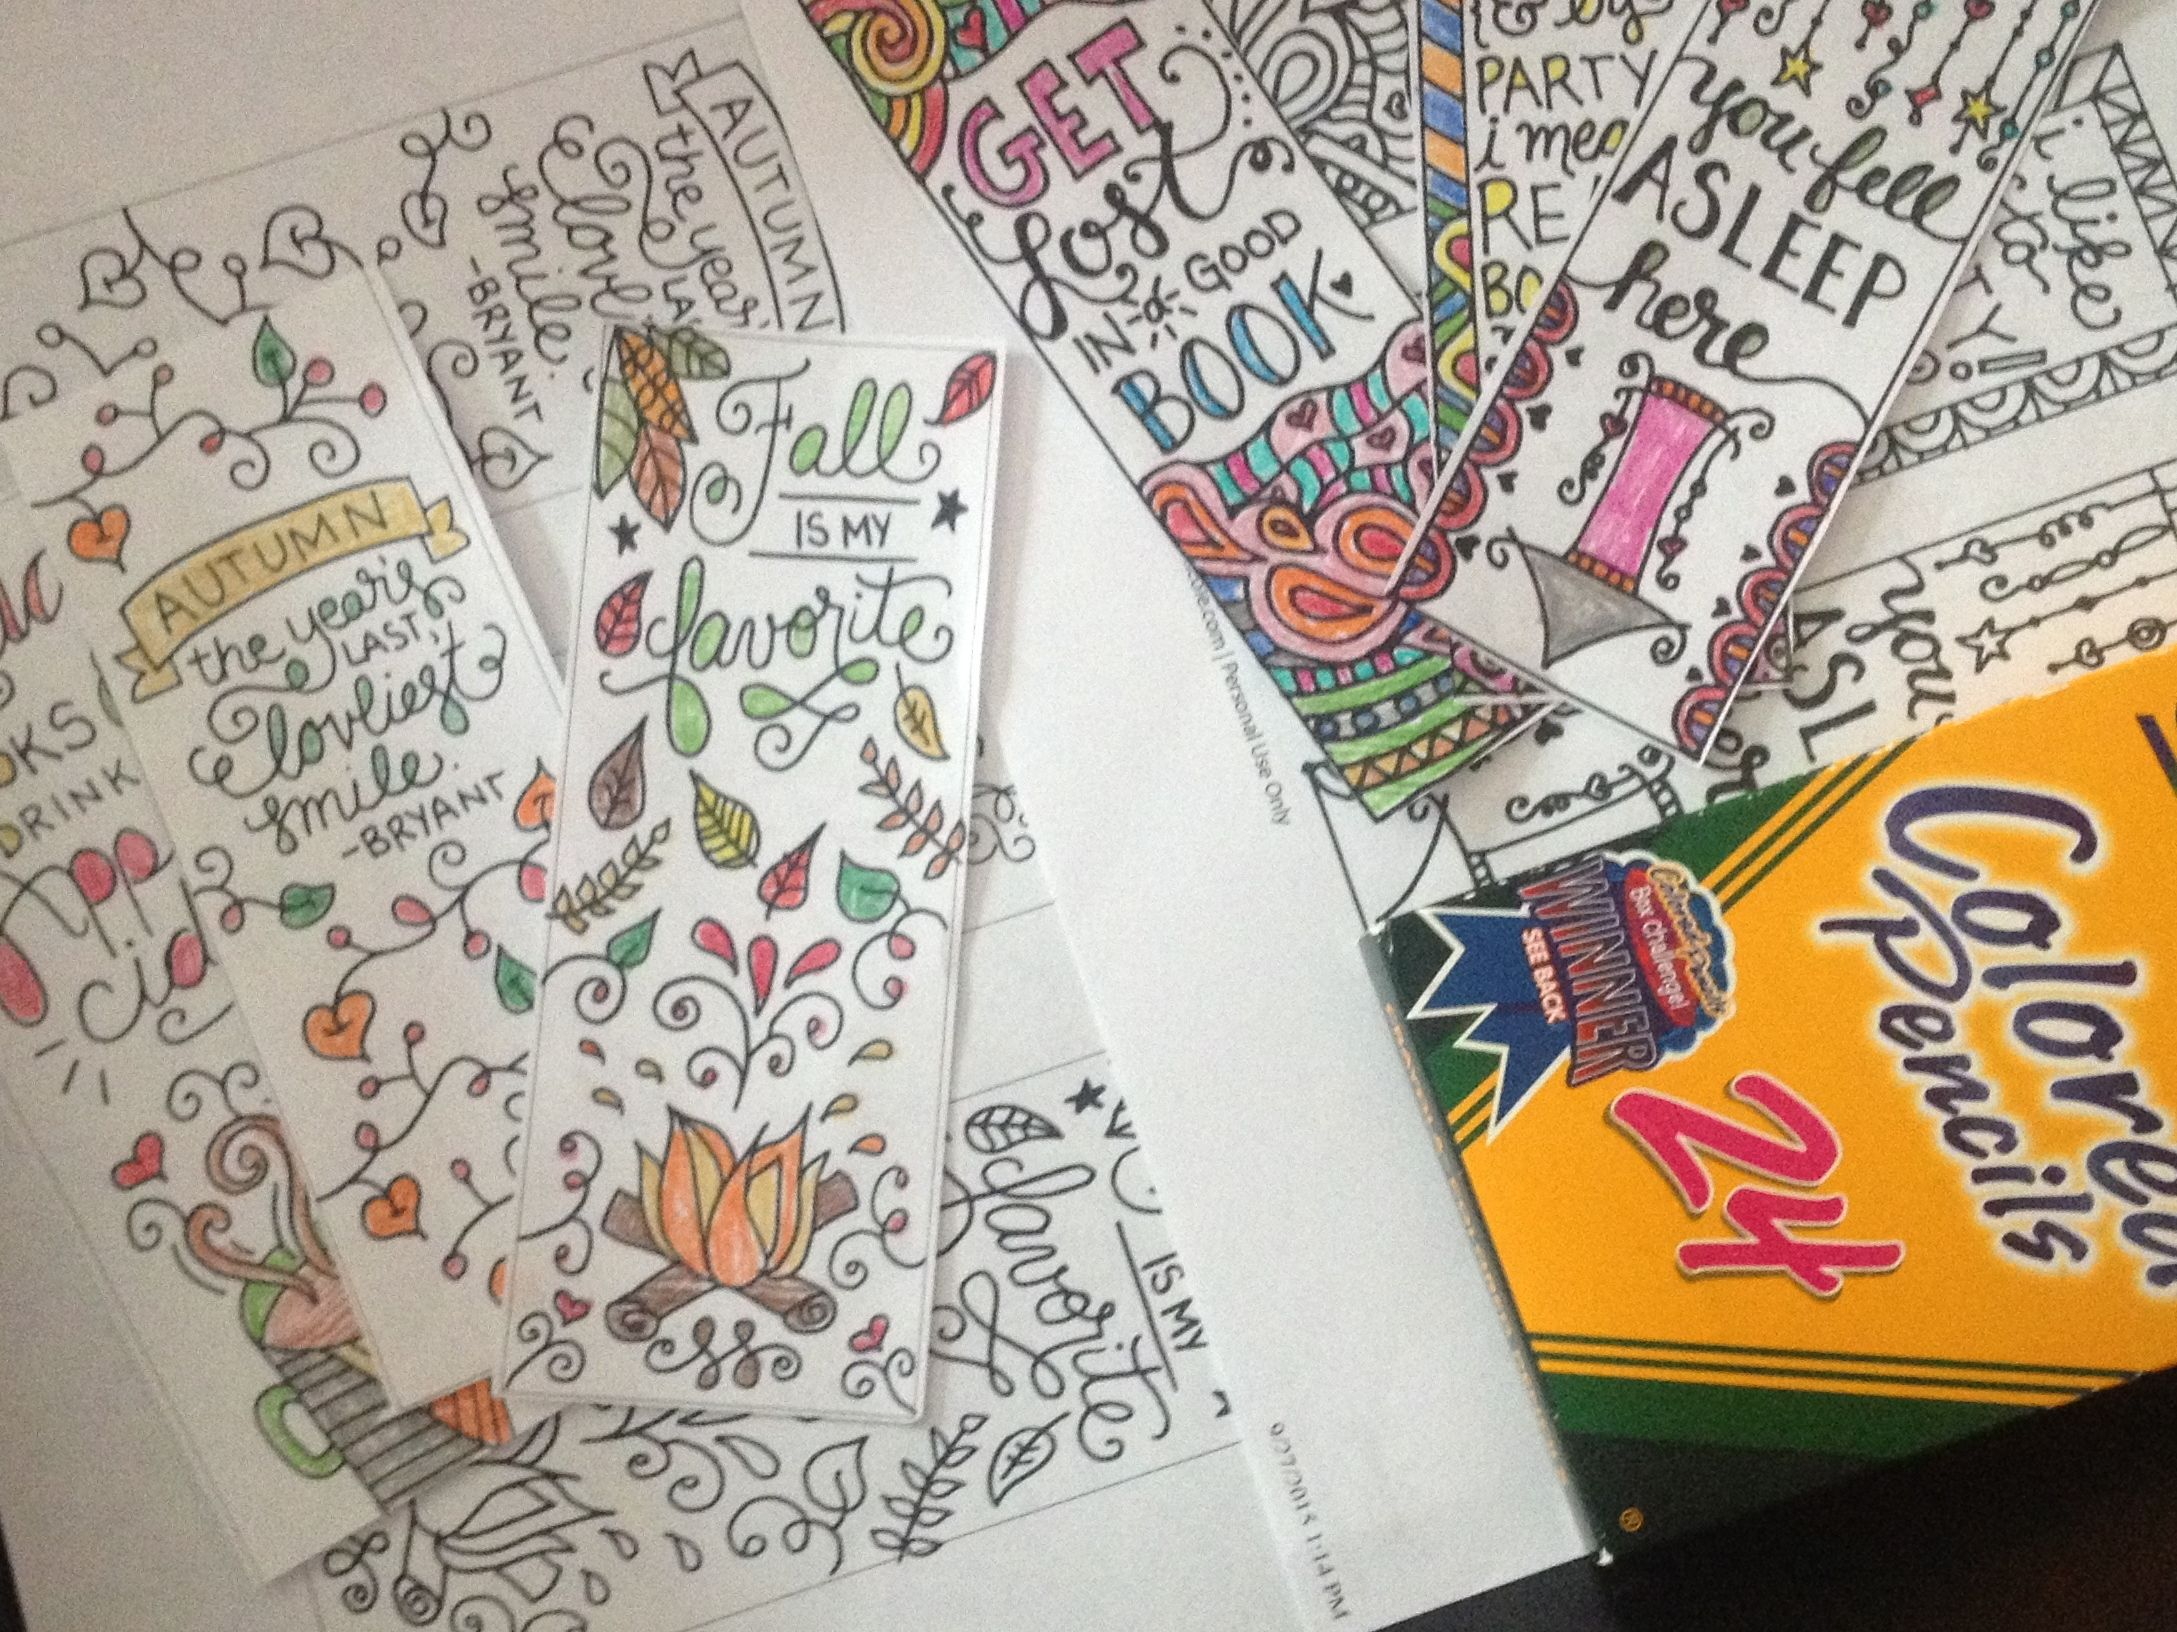 Adult Coloring Therapy Session With Bookmarks Of Course During Book Club Gathering For The Sea Tranquility By Katja Millay